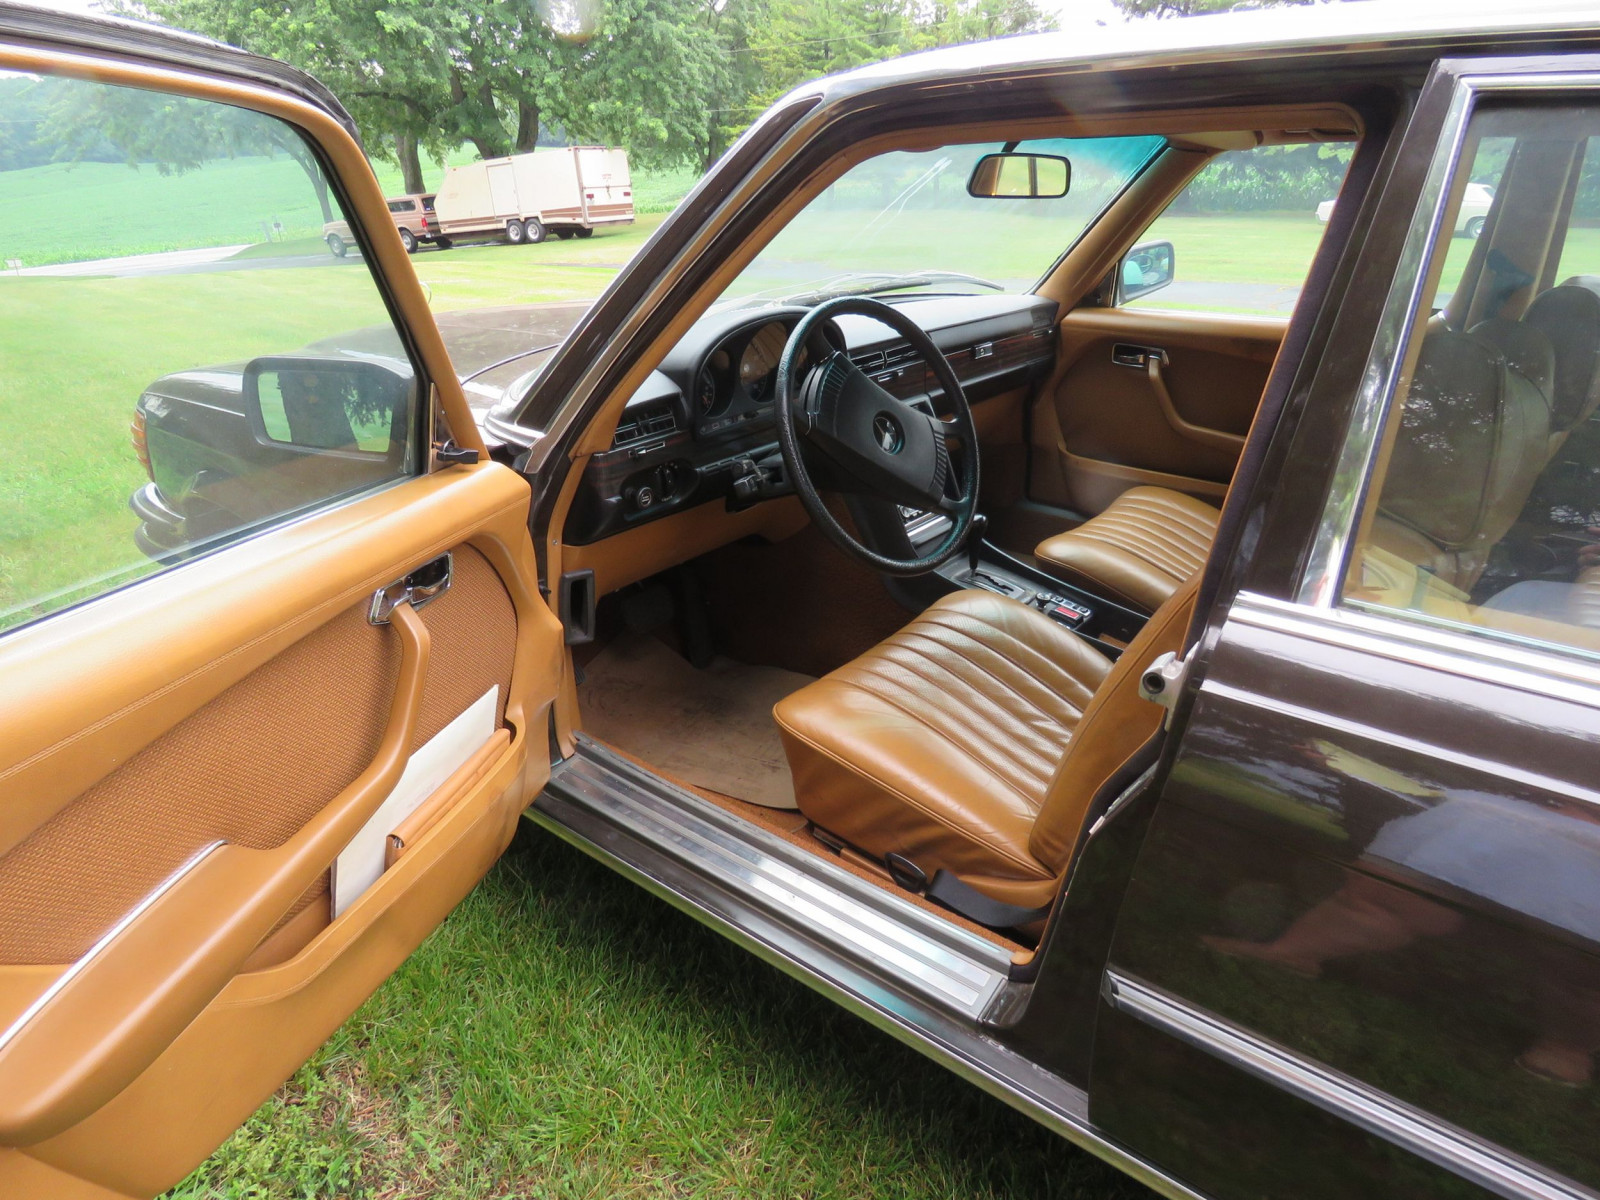 1973 Mercedes 450 SE 4dr Sedan - Image 7